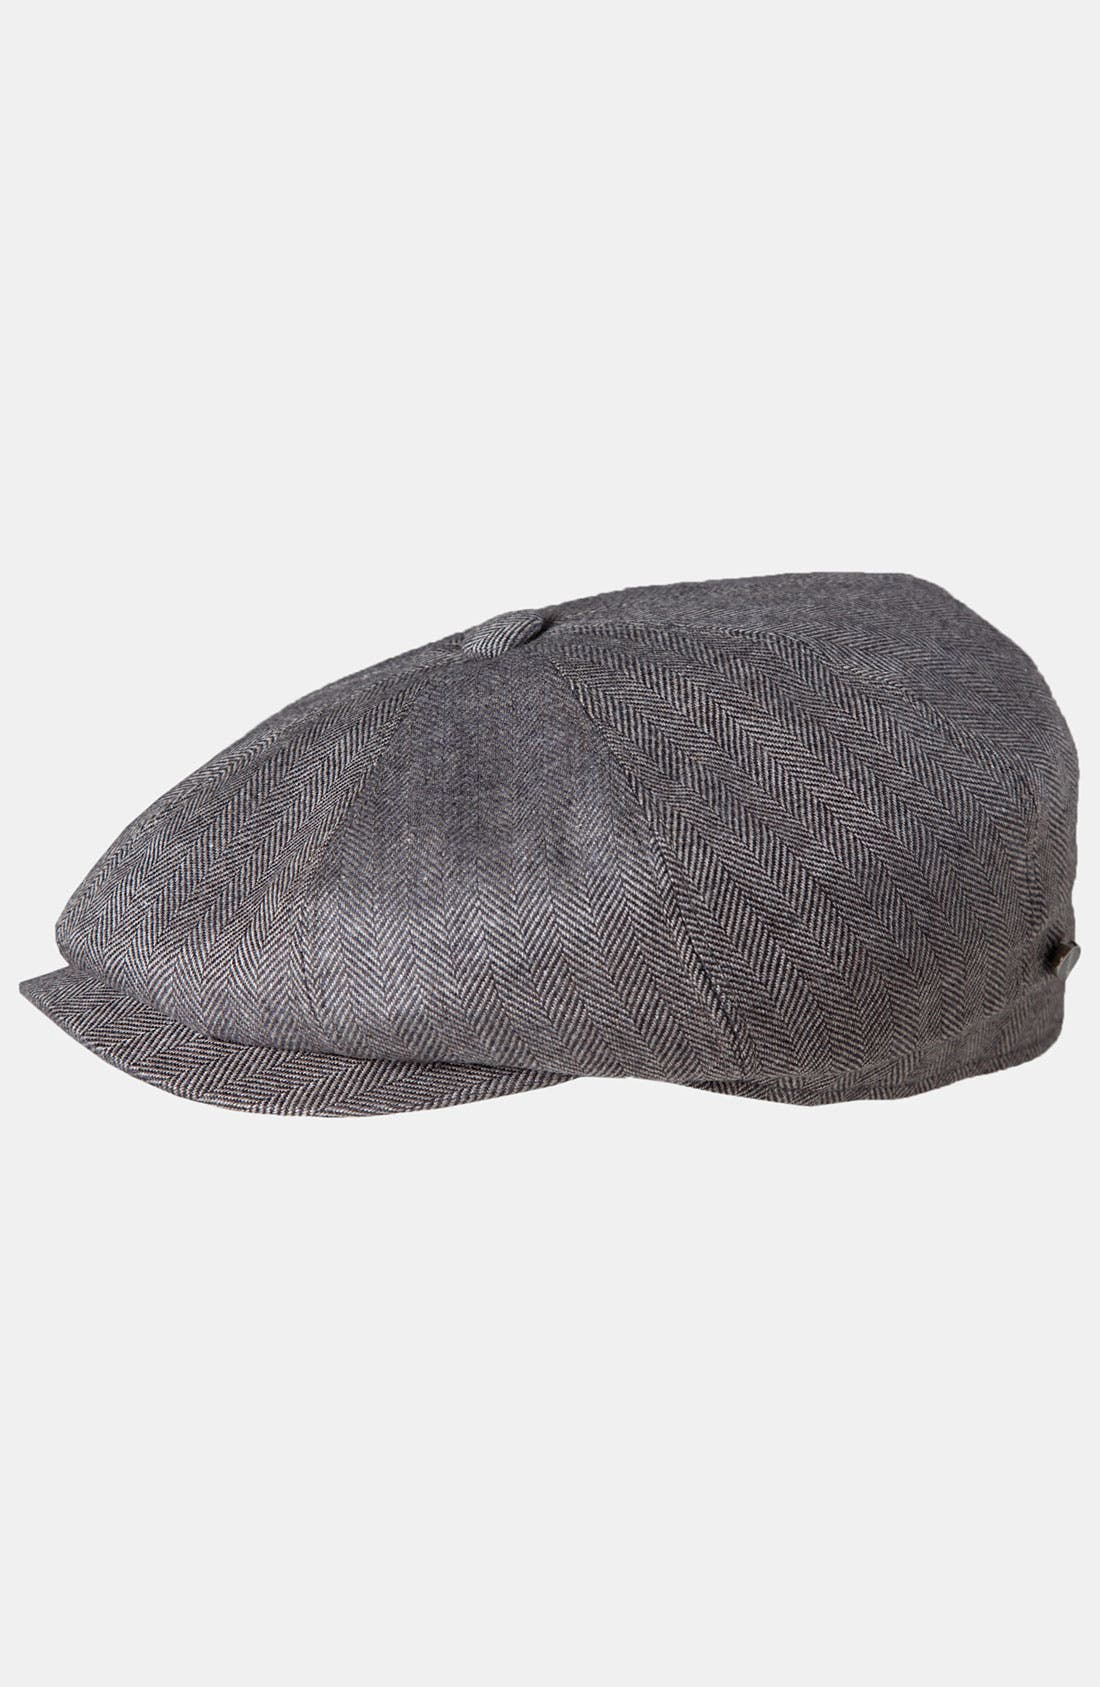 Main Image - Stetson Driving Cap